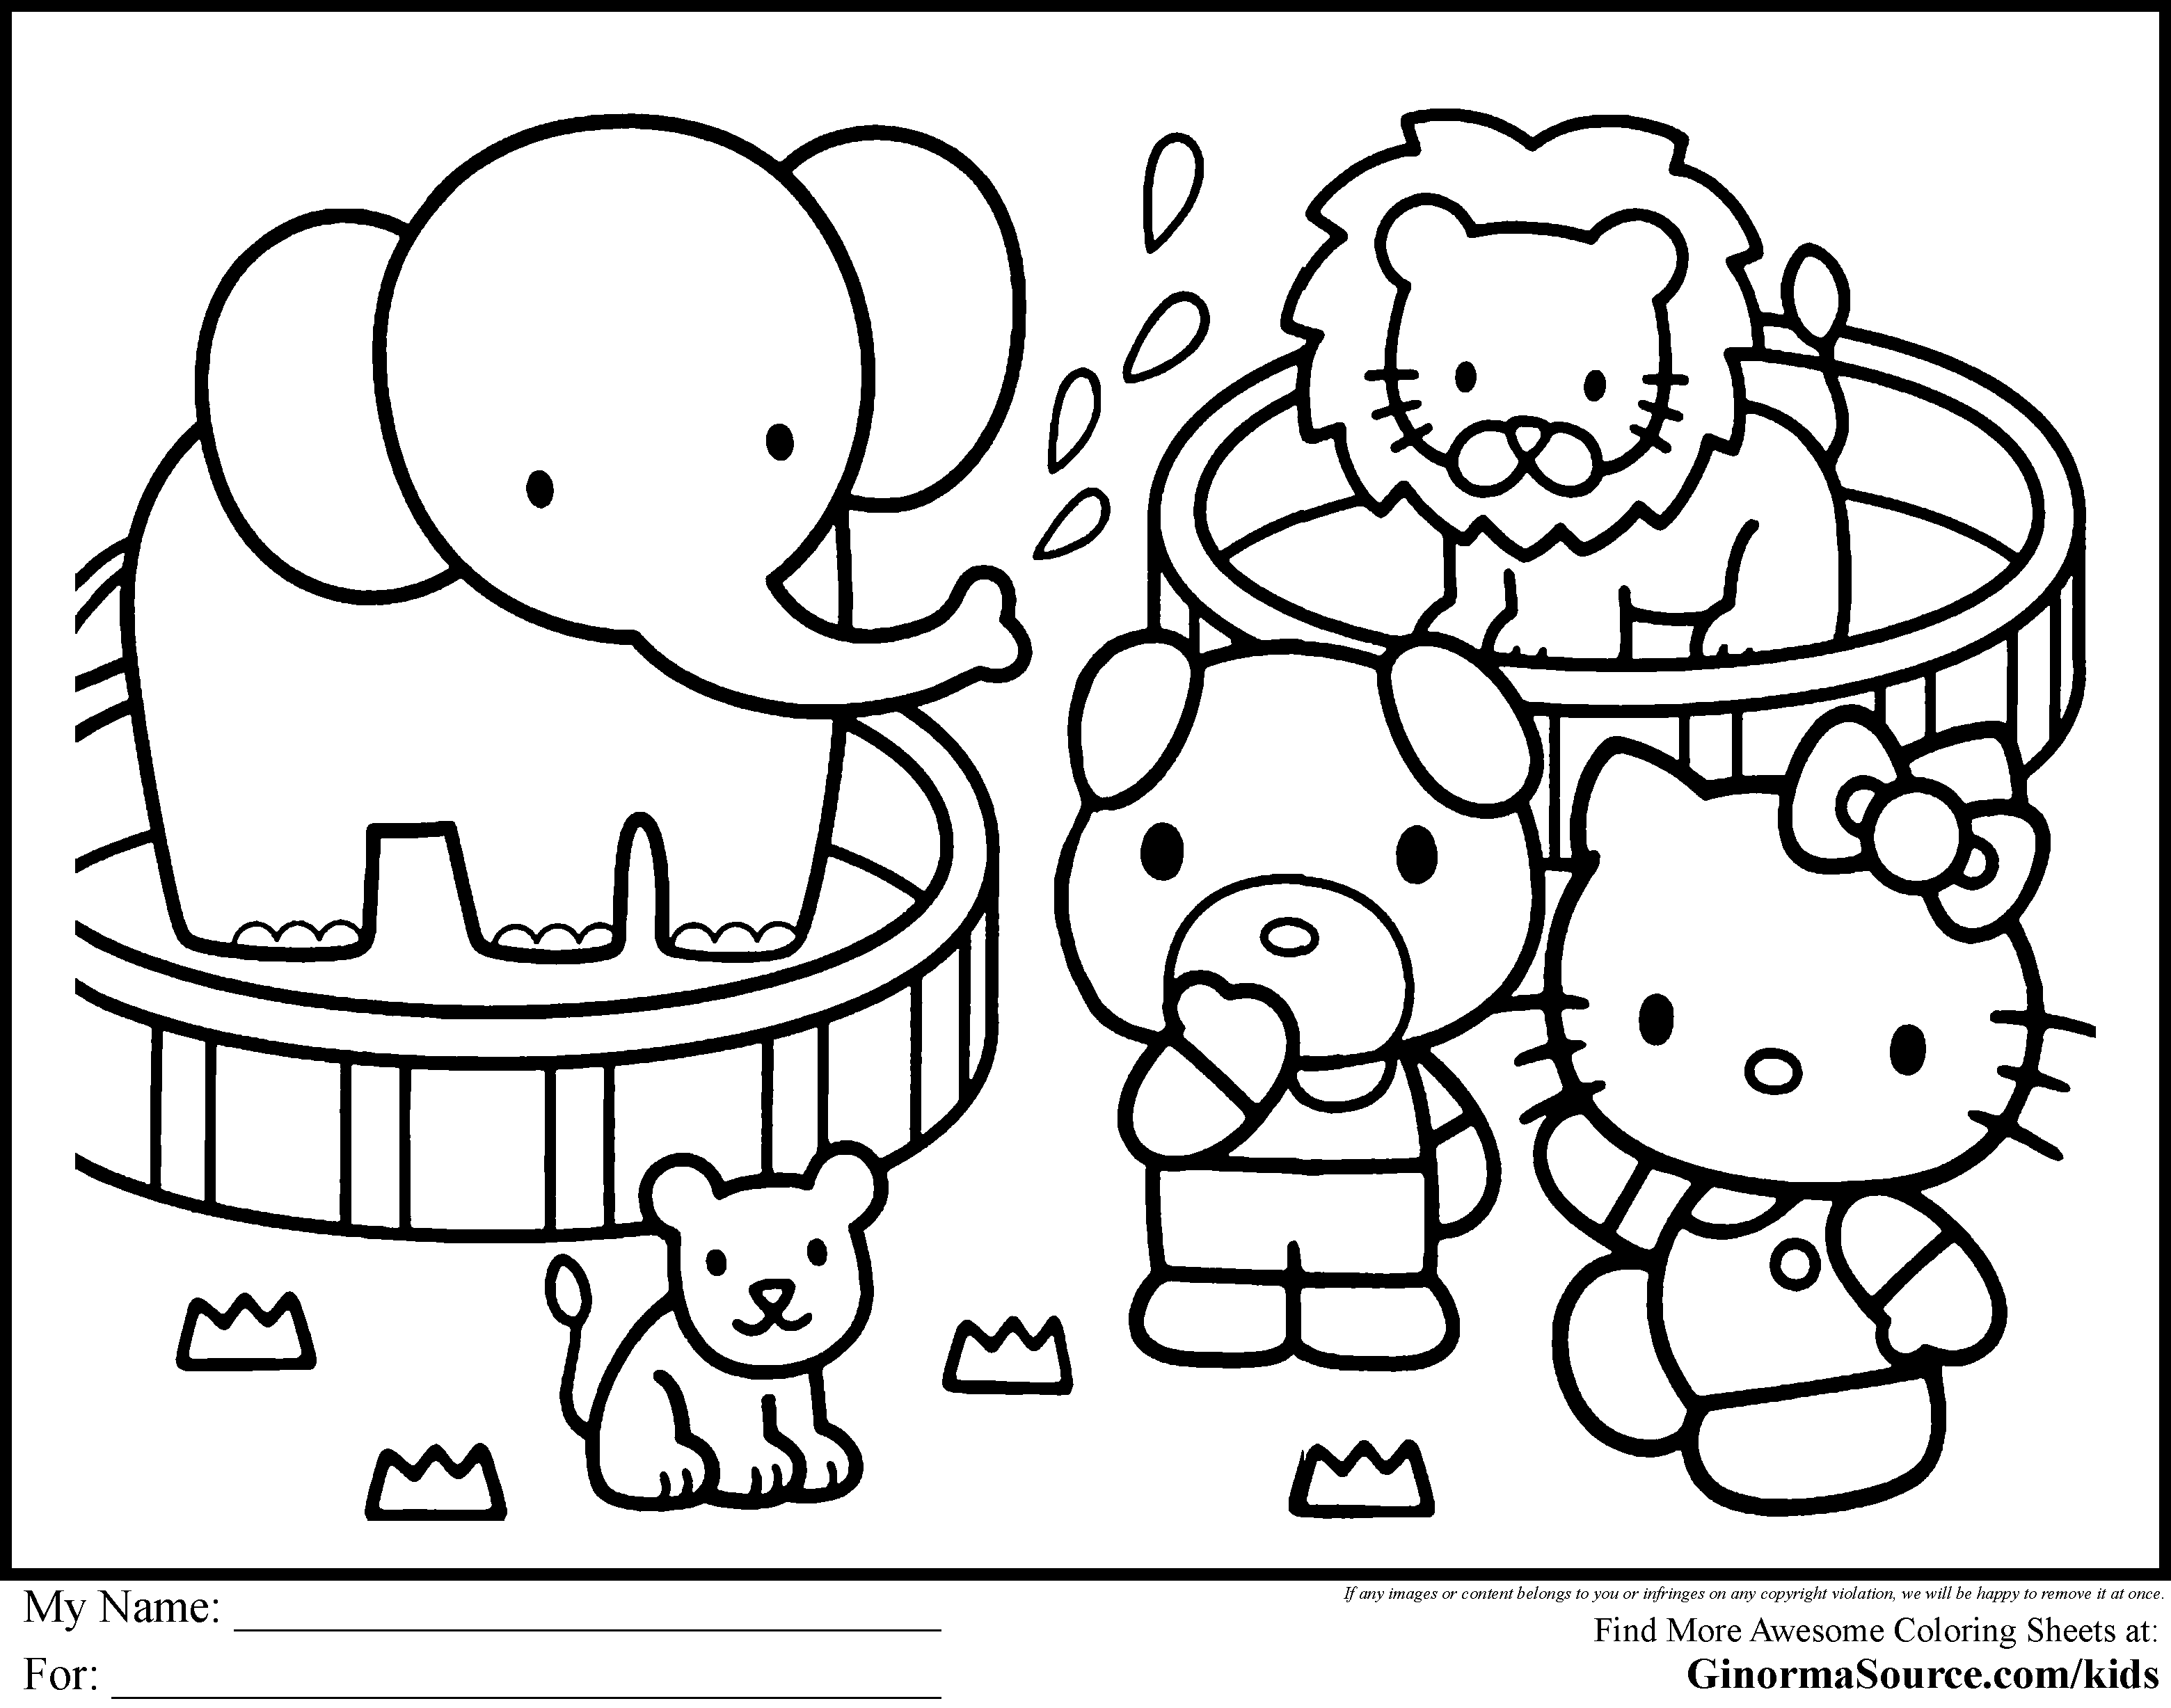 Coloring Pages Color Pages Of Hello Kitty hello kitty coloring pages to print futpal com free printable aquadiso